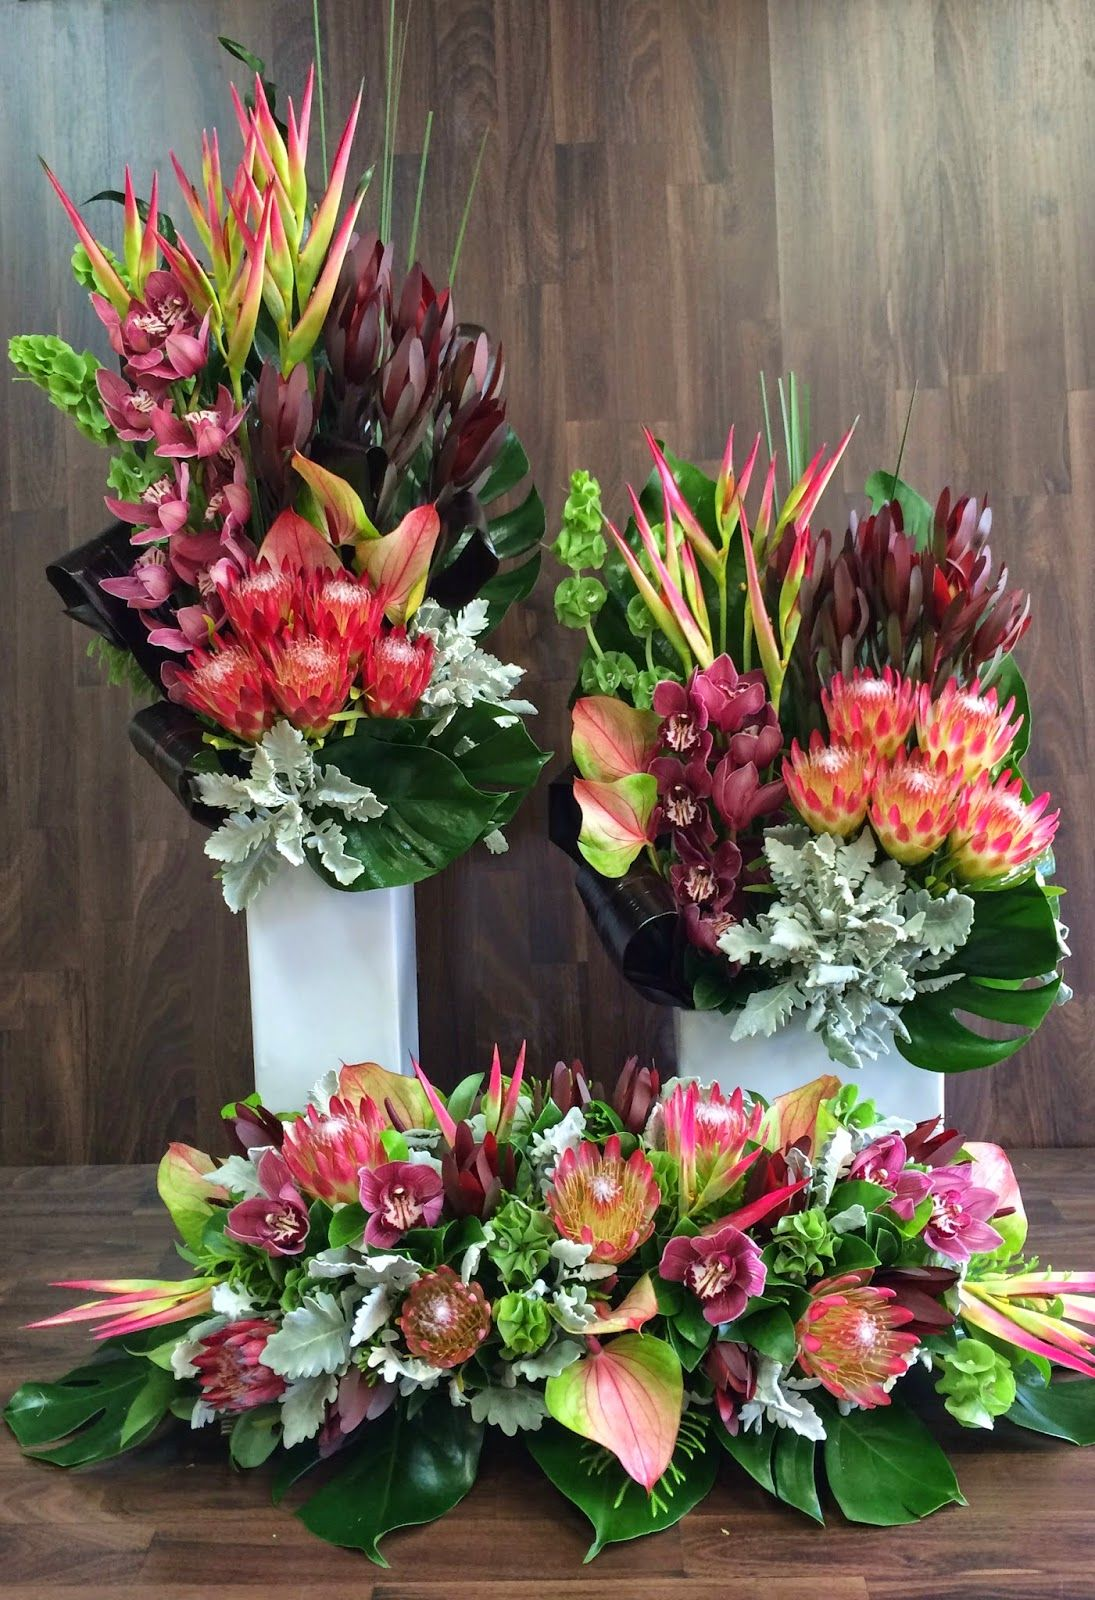 Maui Real Estate Guru Urban Flower: Australian Native Flower Arrangements  For Church